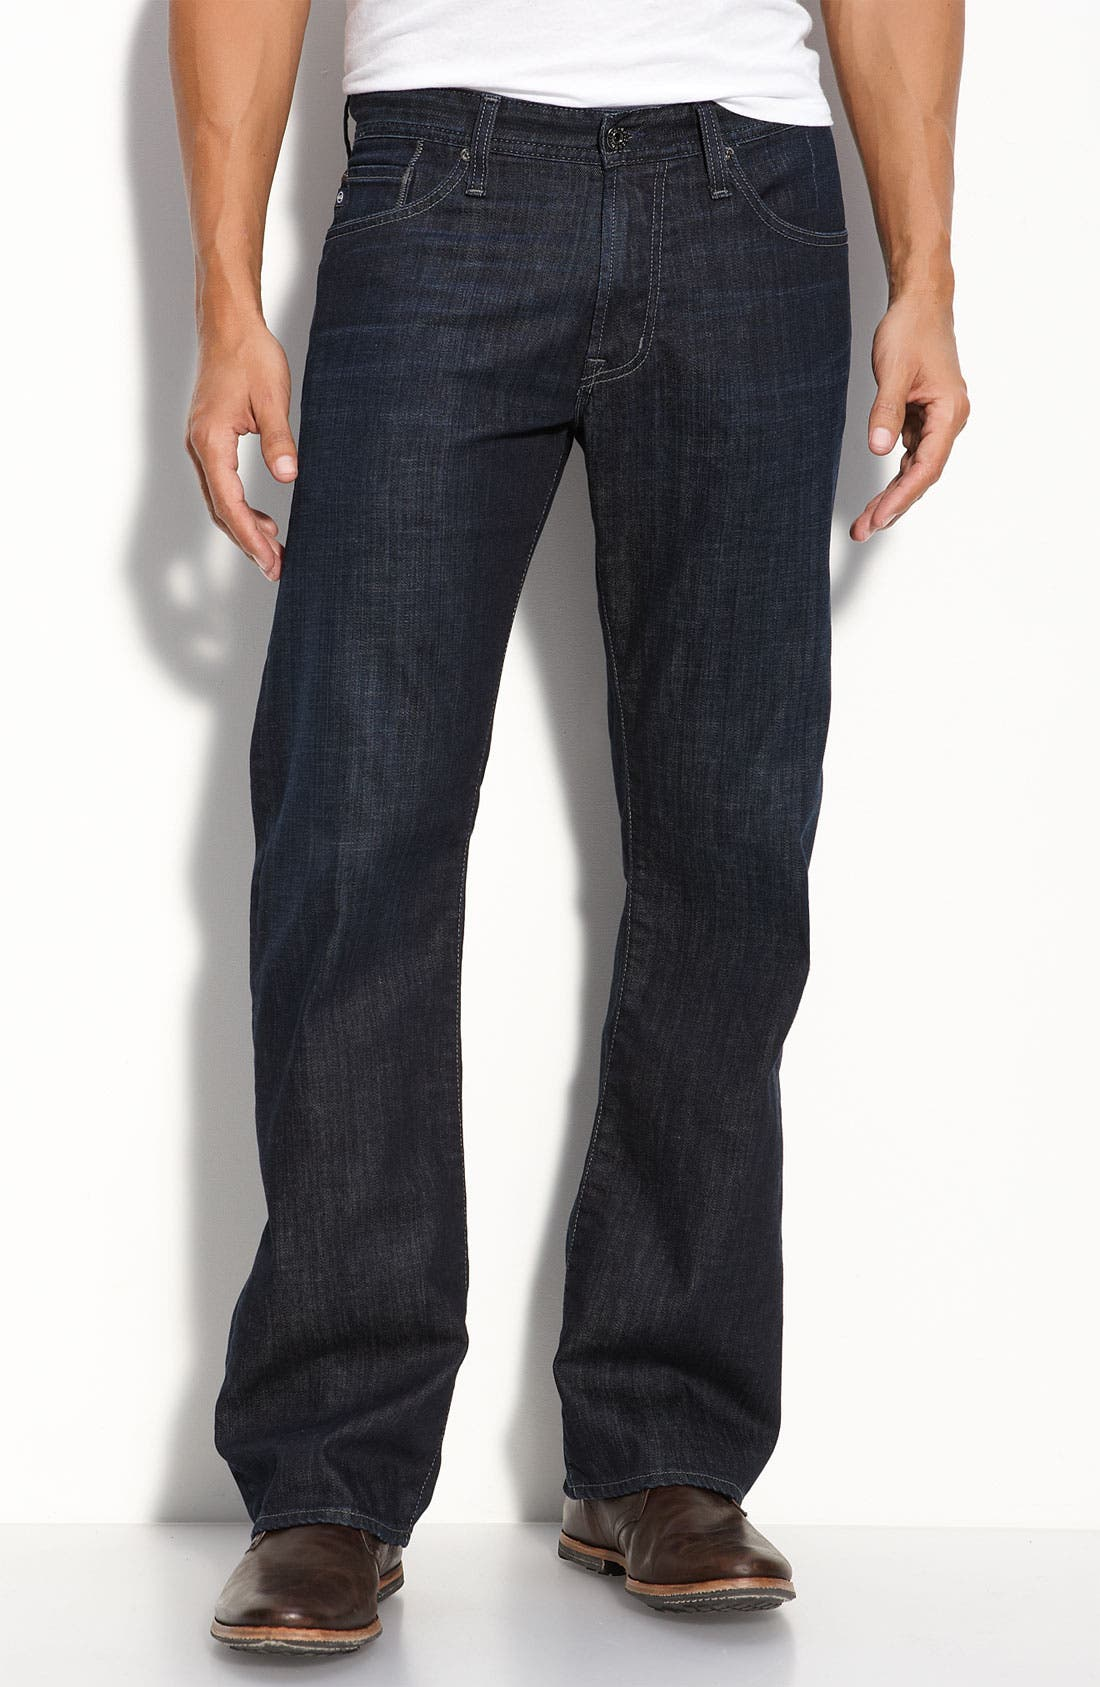 Alternate Image 1 Selected - AG Jeans 'Hero' Relaxed Fit Jeans (ARP)